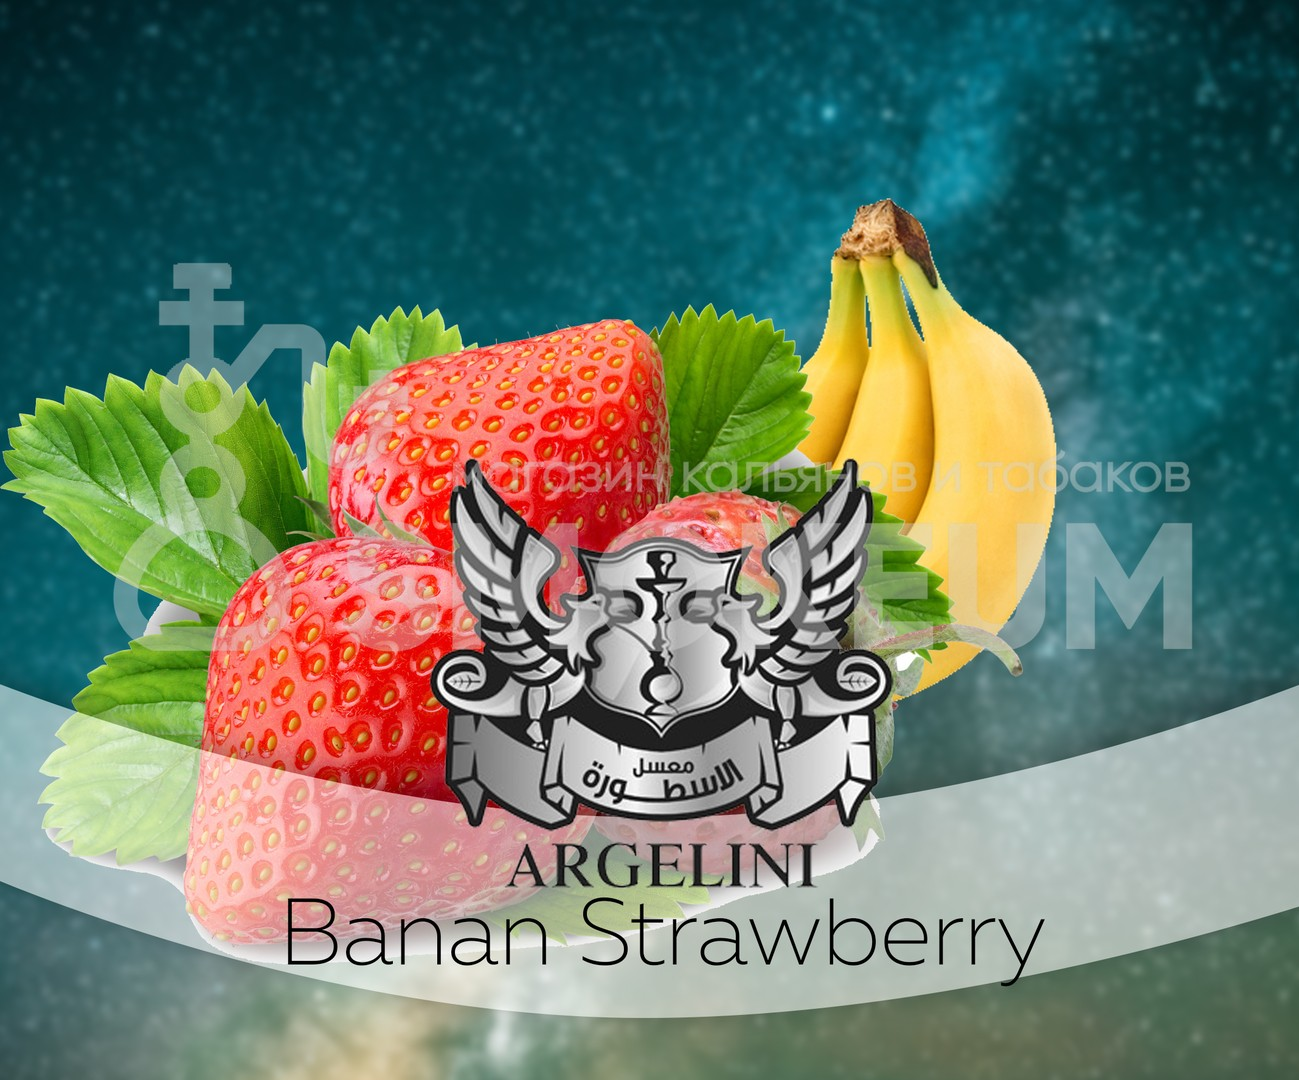 Табак Argelini - Banan Strawberry ( Банан - Клубника ) 50 гр